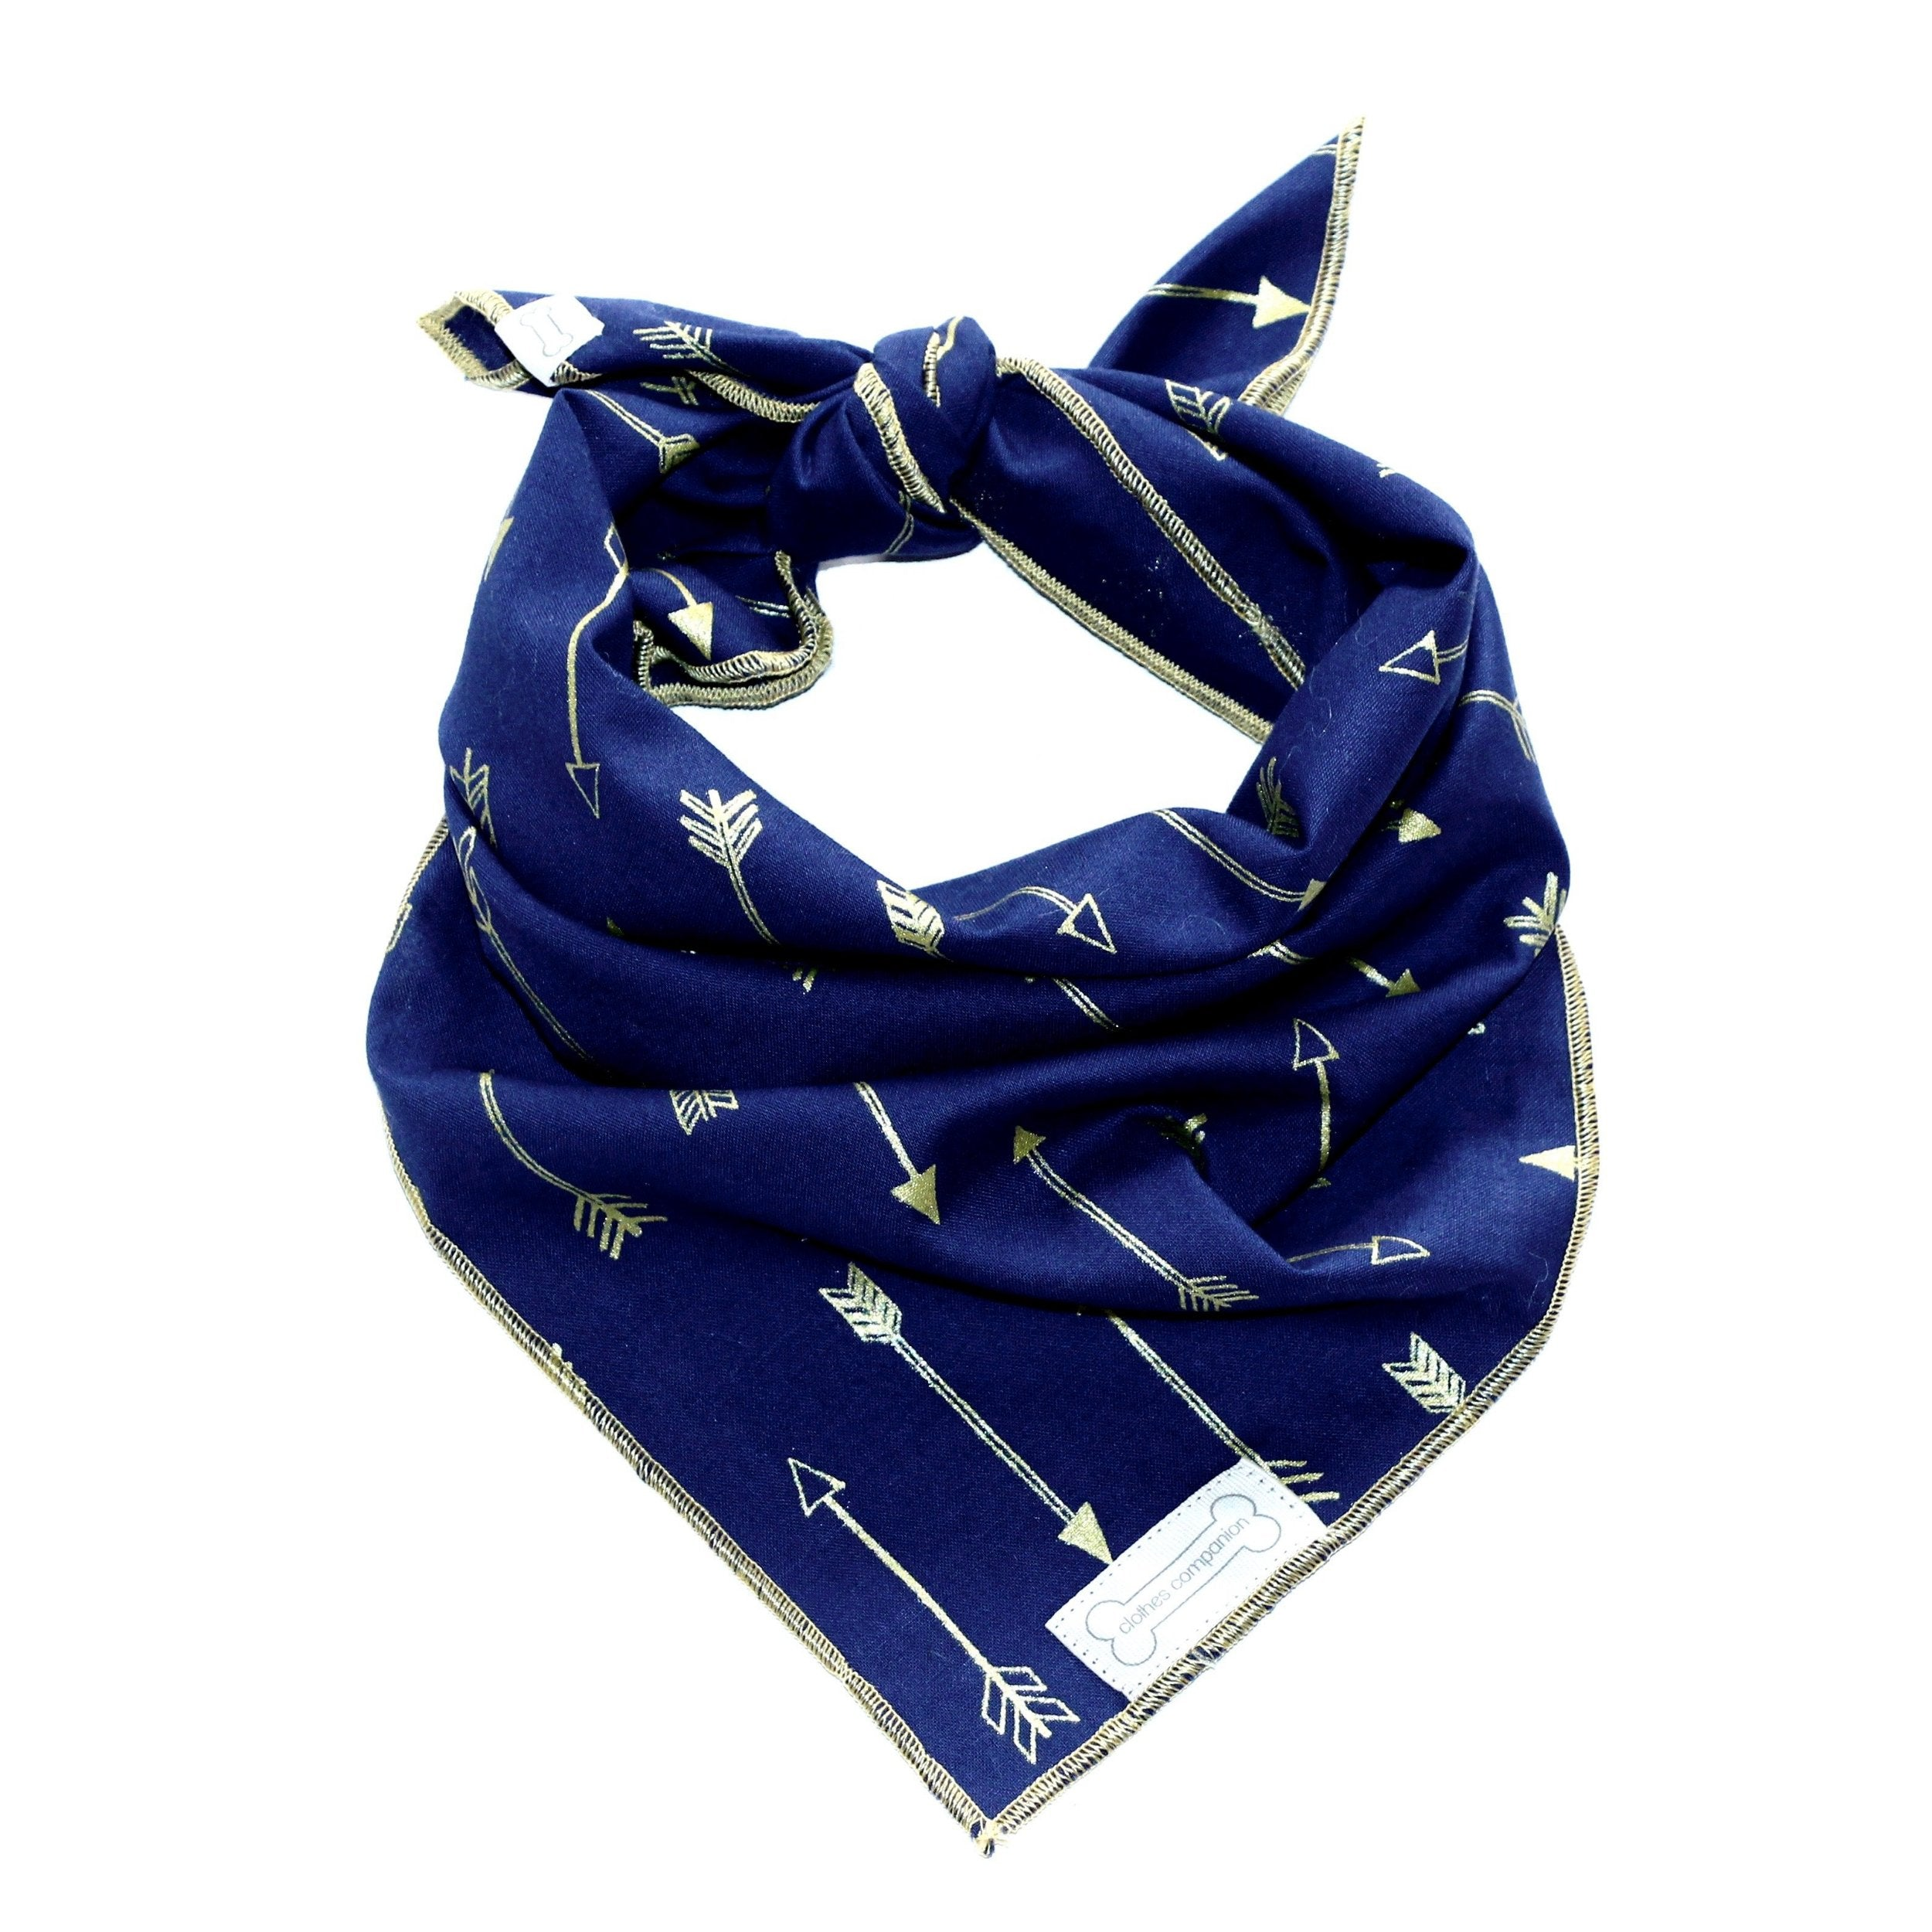 THE LUCKY CLASSIC-TIE BANDANA